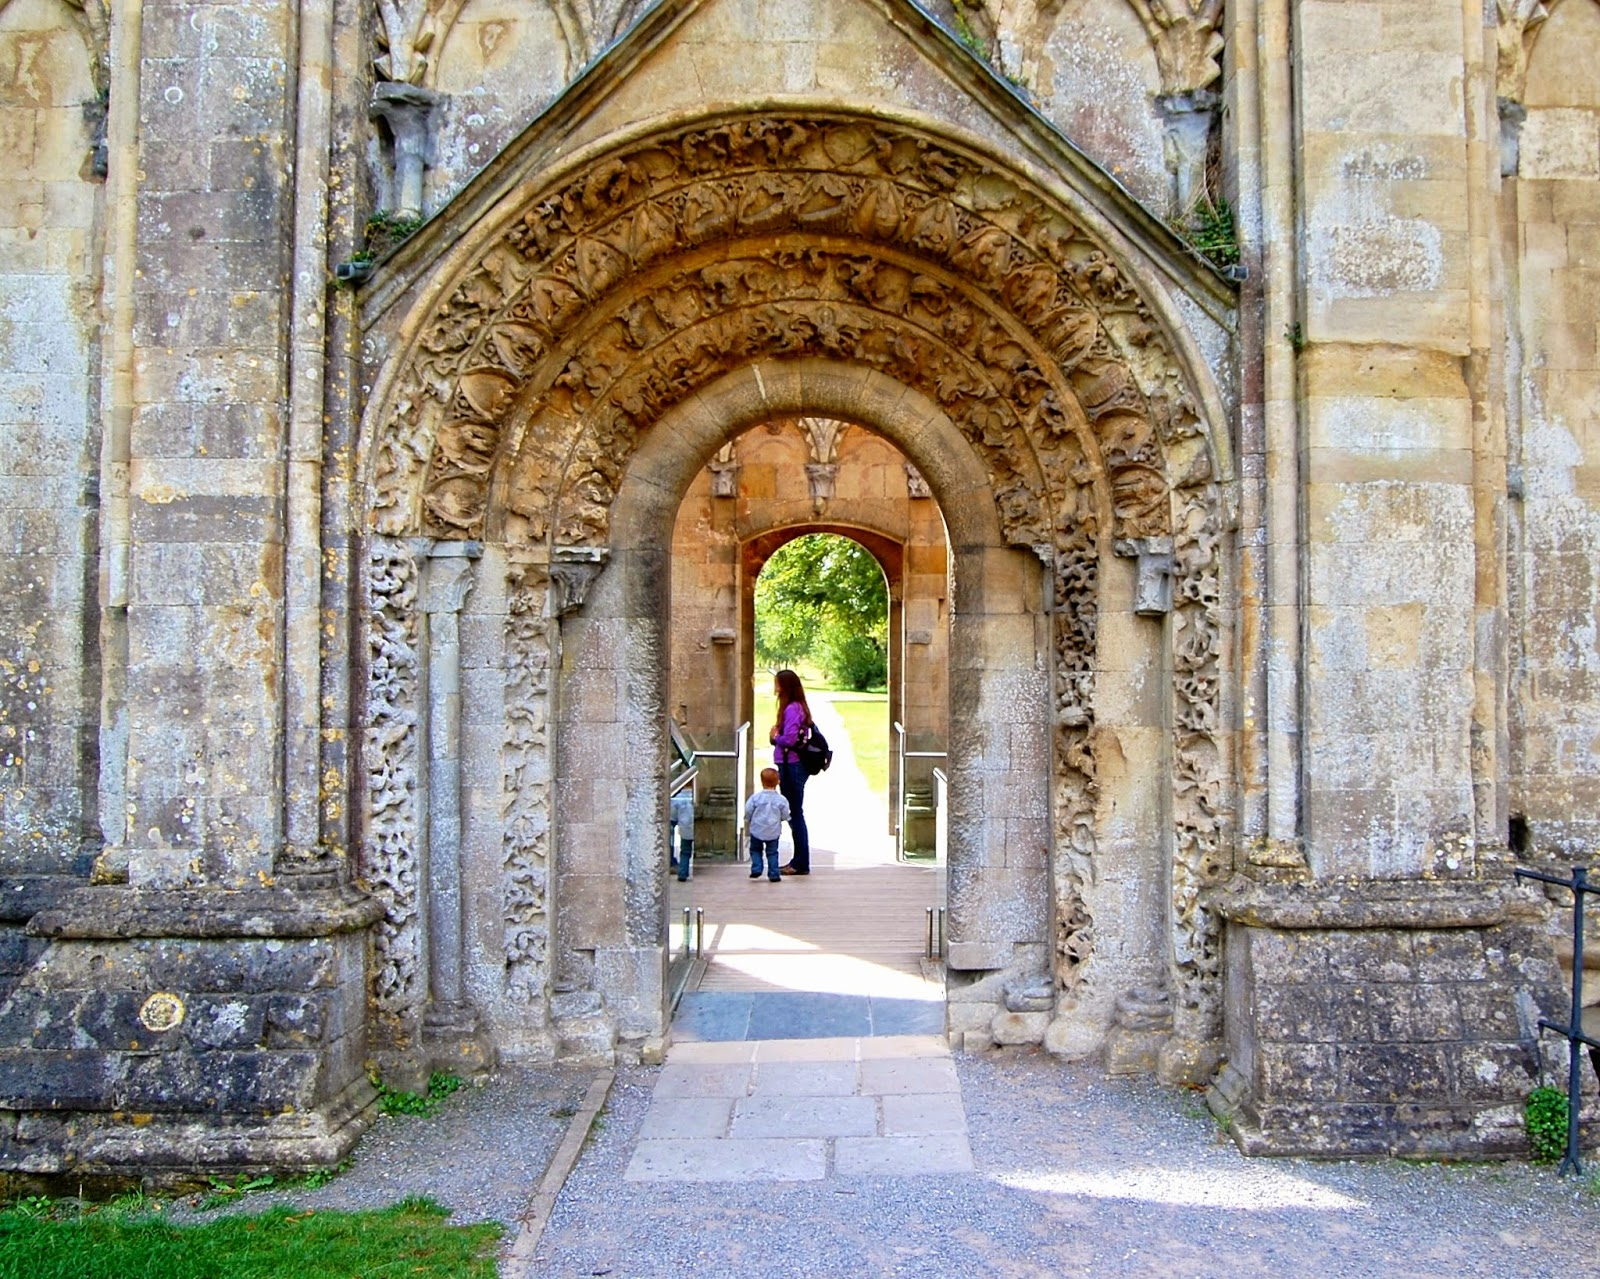 Archivolt on the Lady Chapel of Glastonbury Abbey